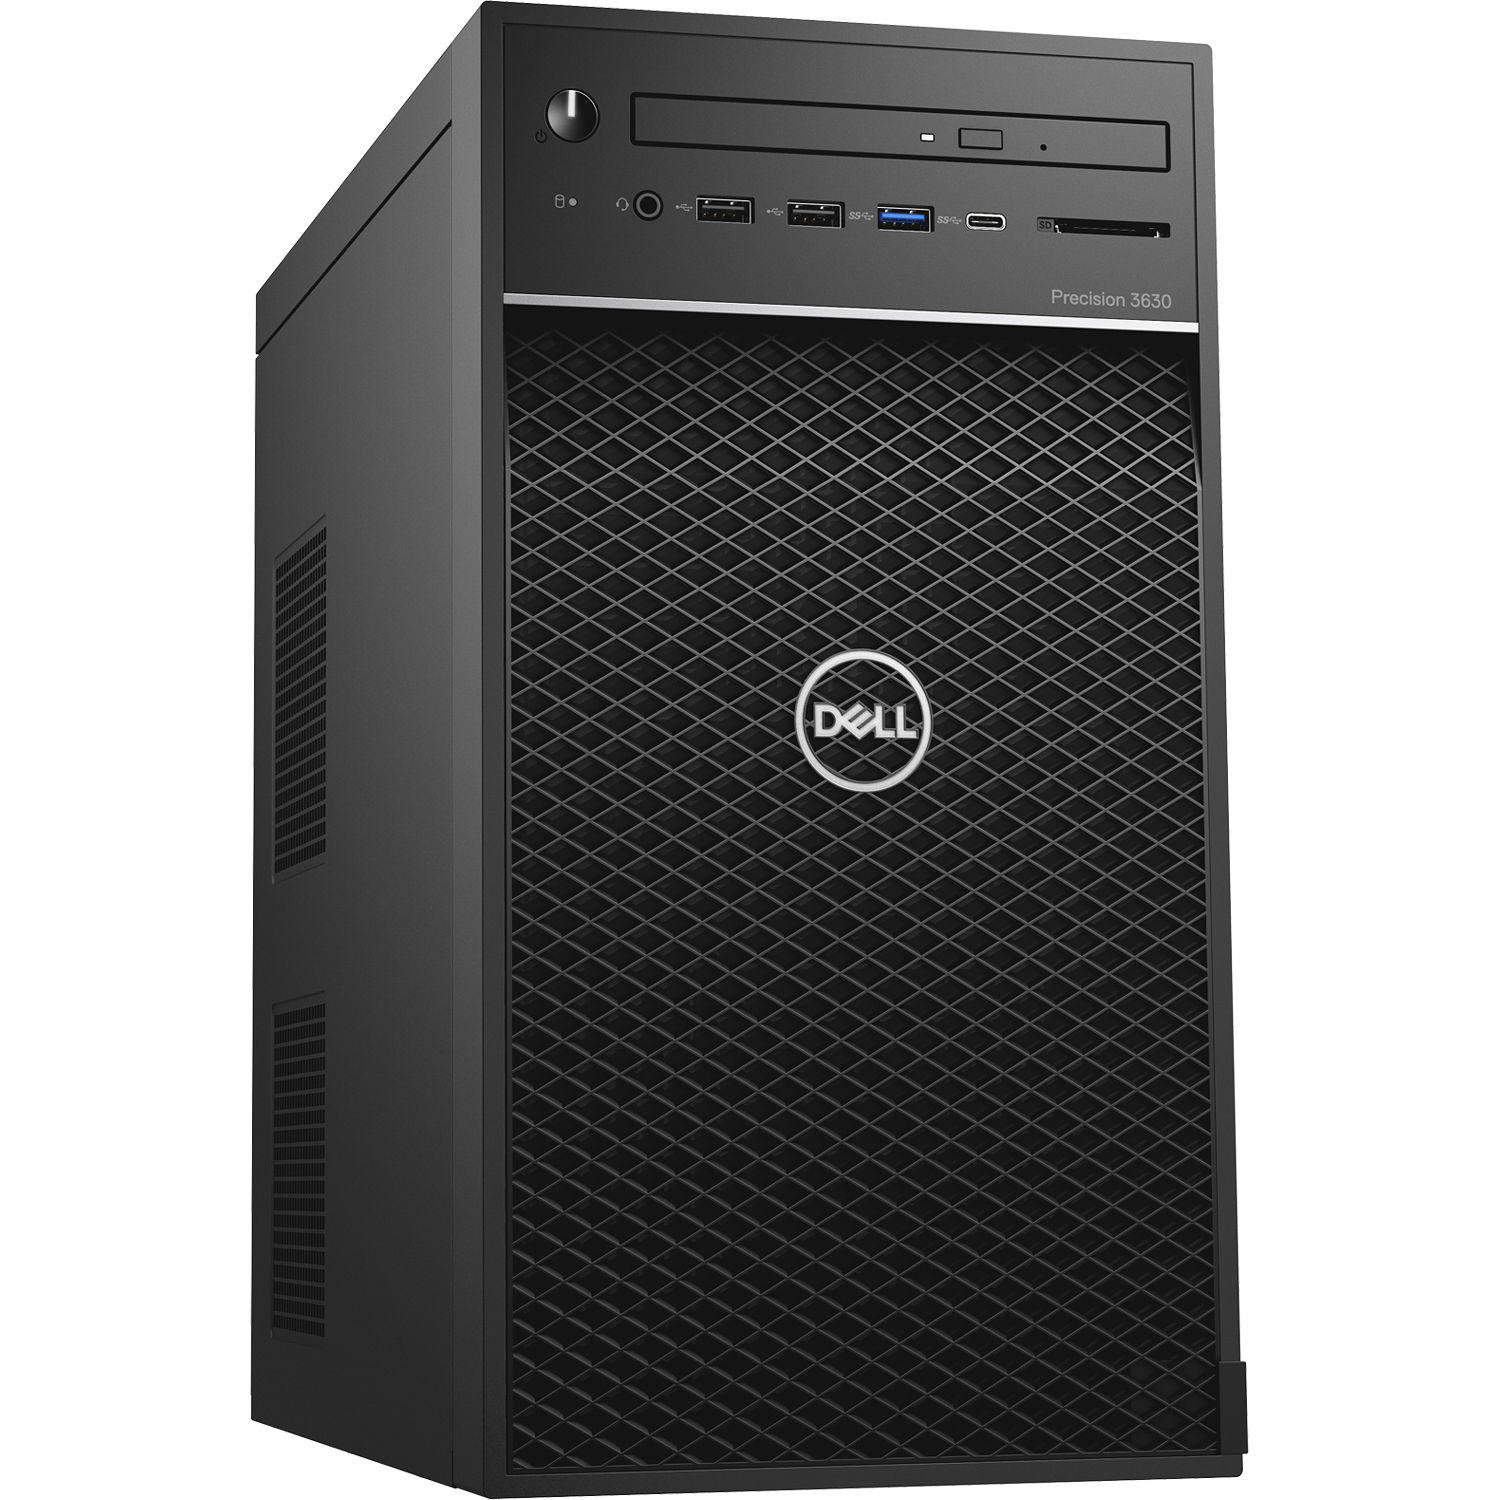 dell_467dg_precision_3630_mt_i7_8700k_1451271.jpg